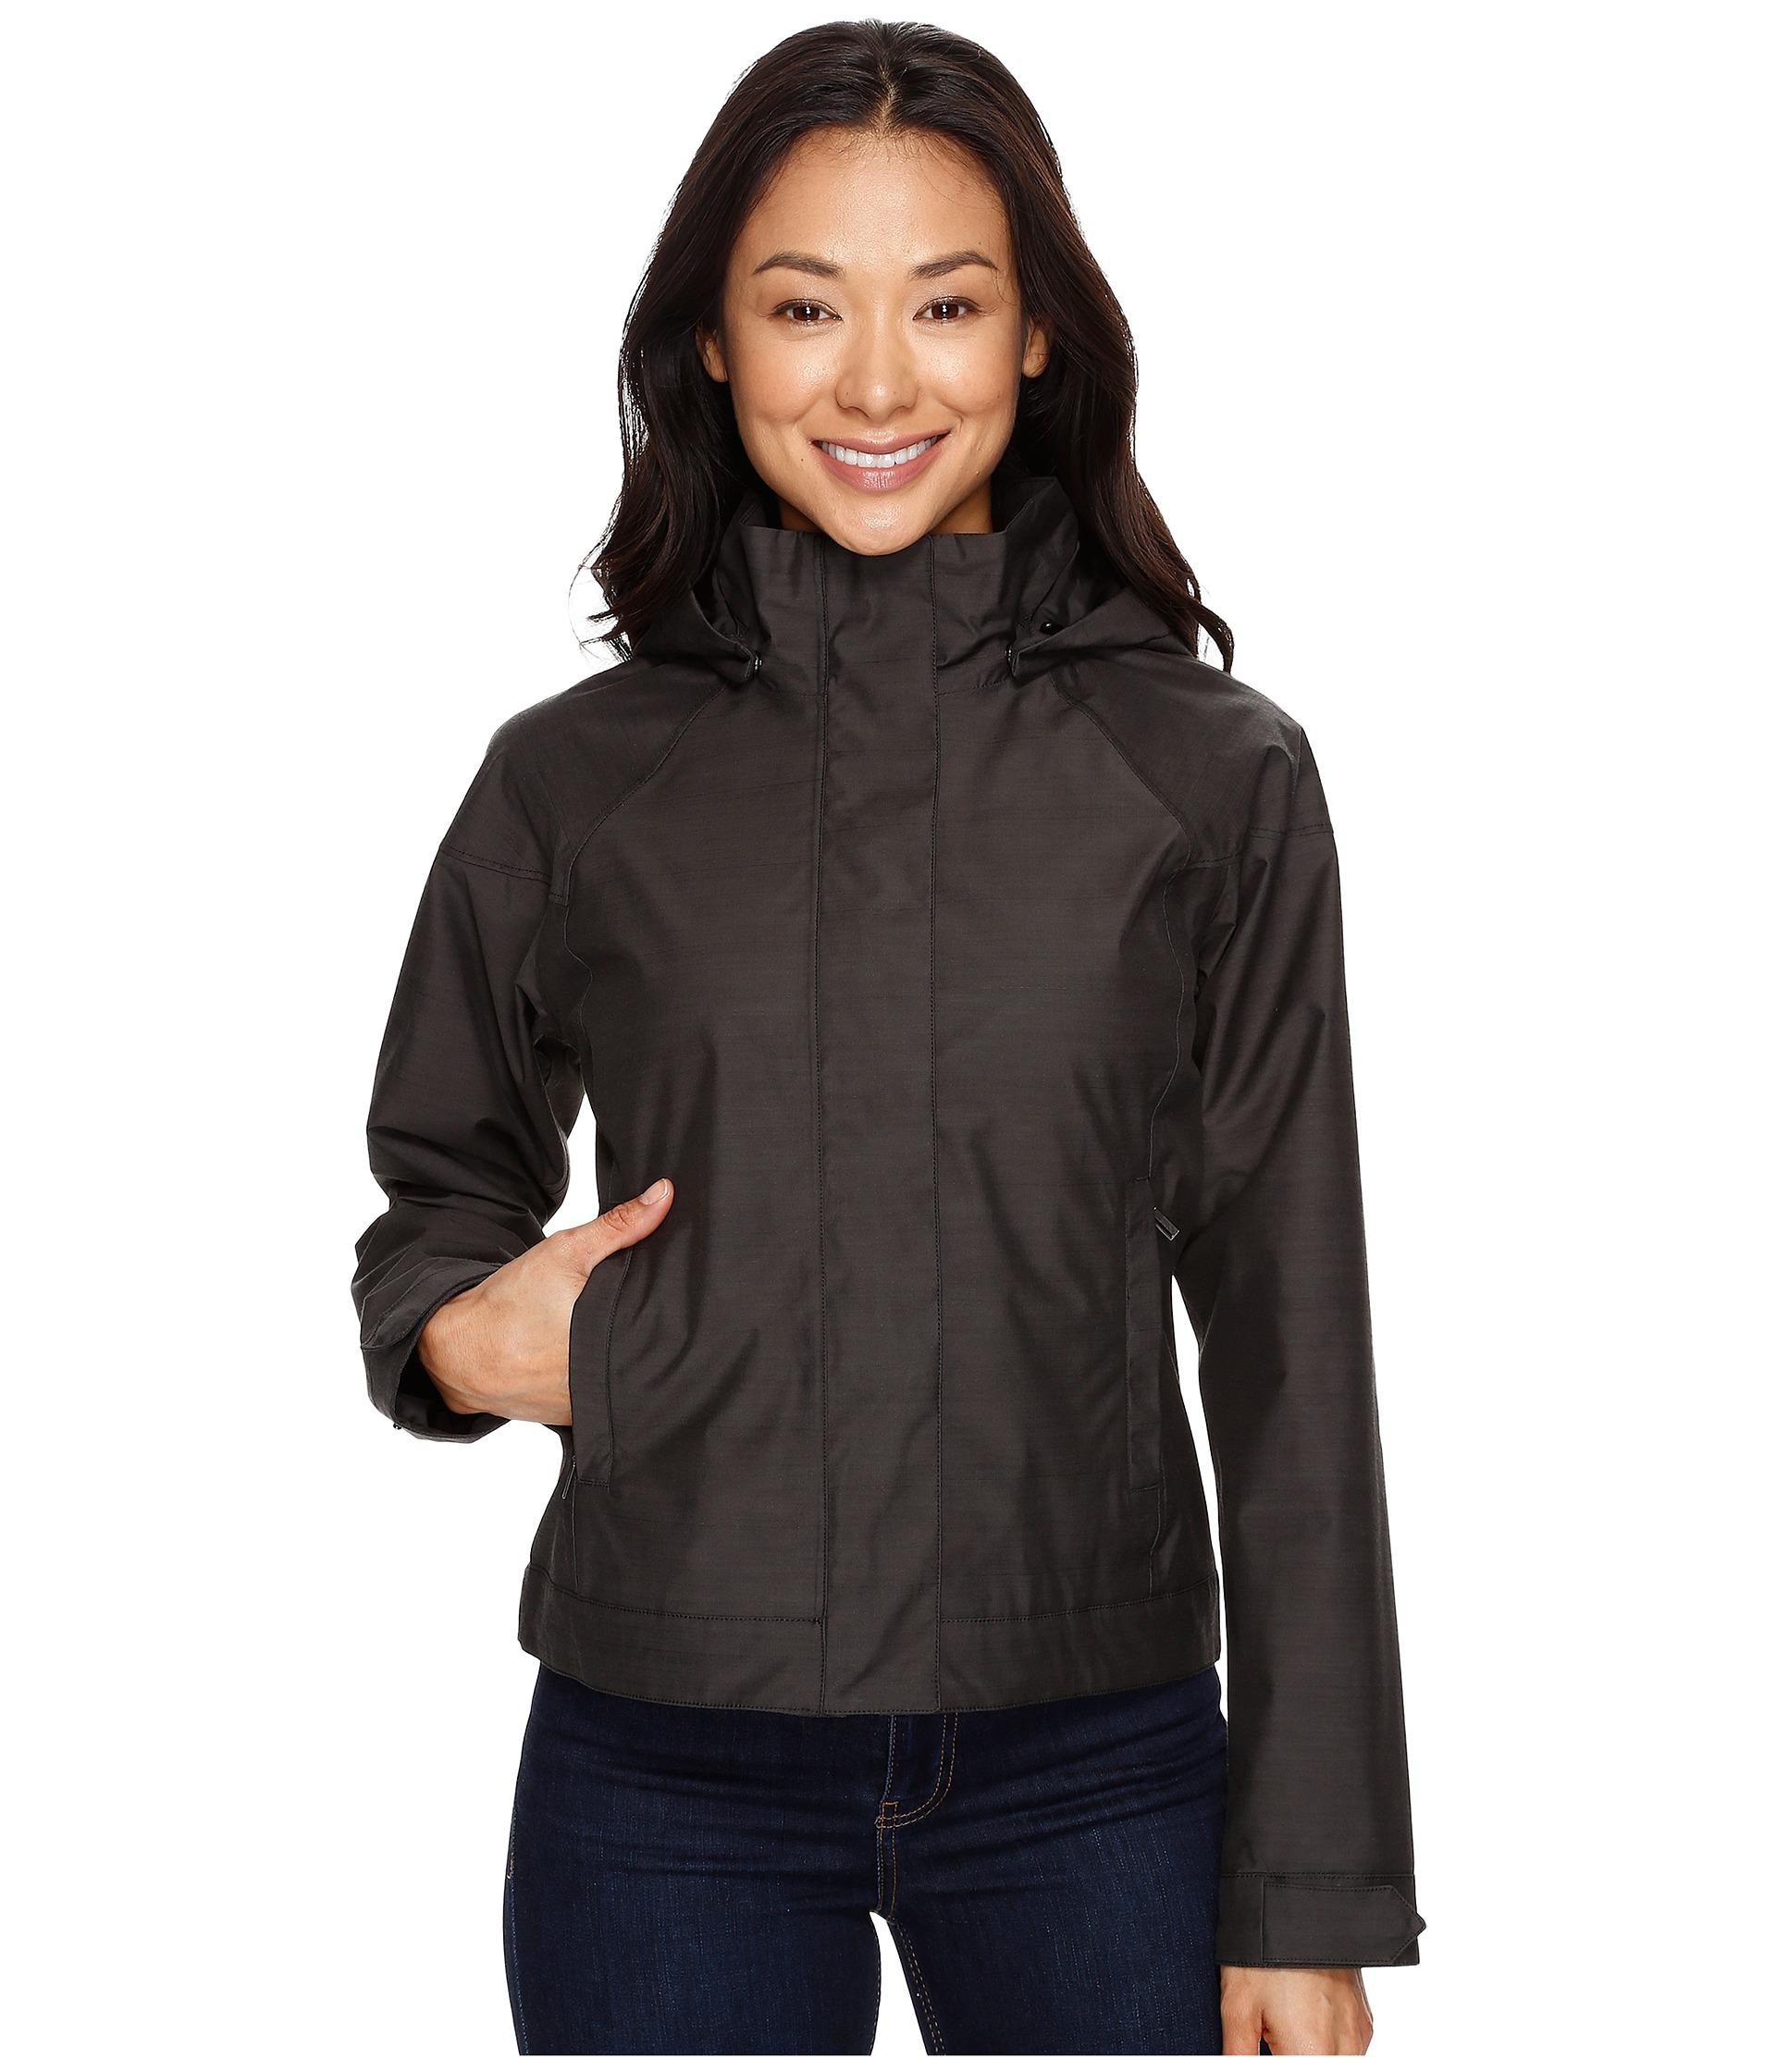 Search for nau jackets Preisvergleich, Testbericht und Kaufberatung95% customer satisfaction· Huge Selection· Enjoy Big SavingsTypes: Clothing and Accessories, Handbags and Wallets, Luggage and Shoes.